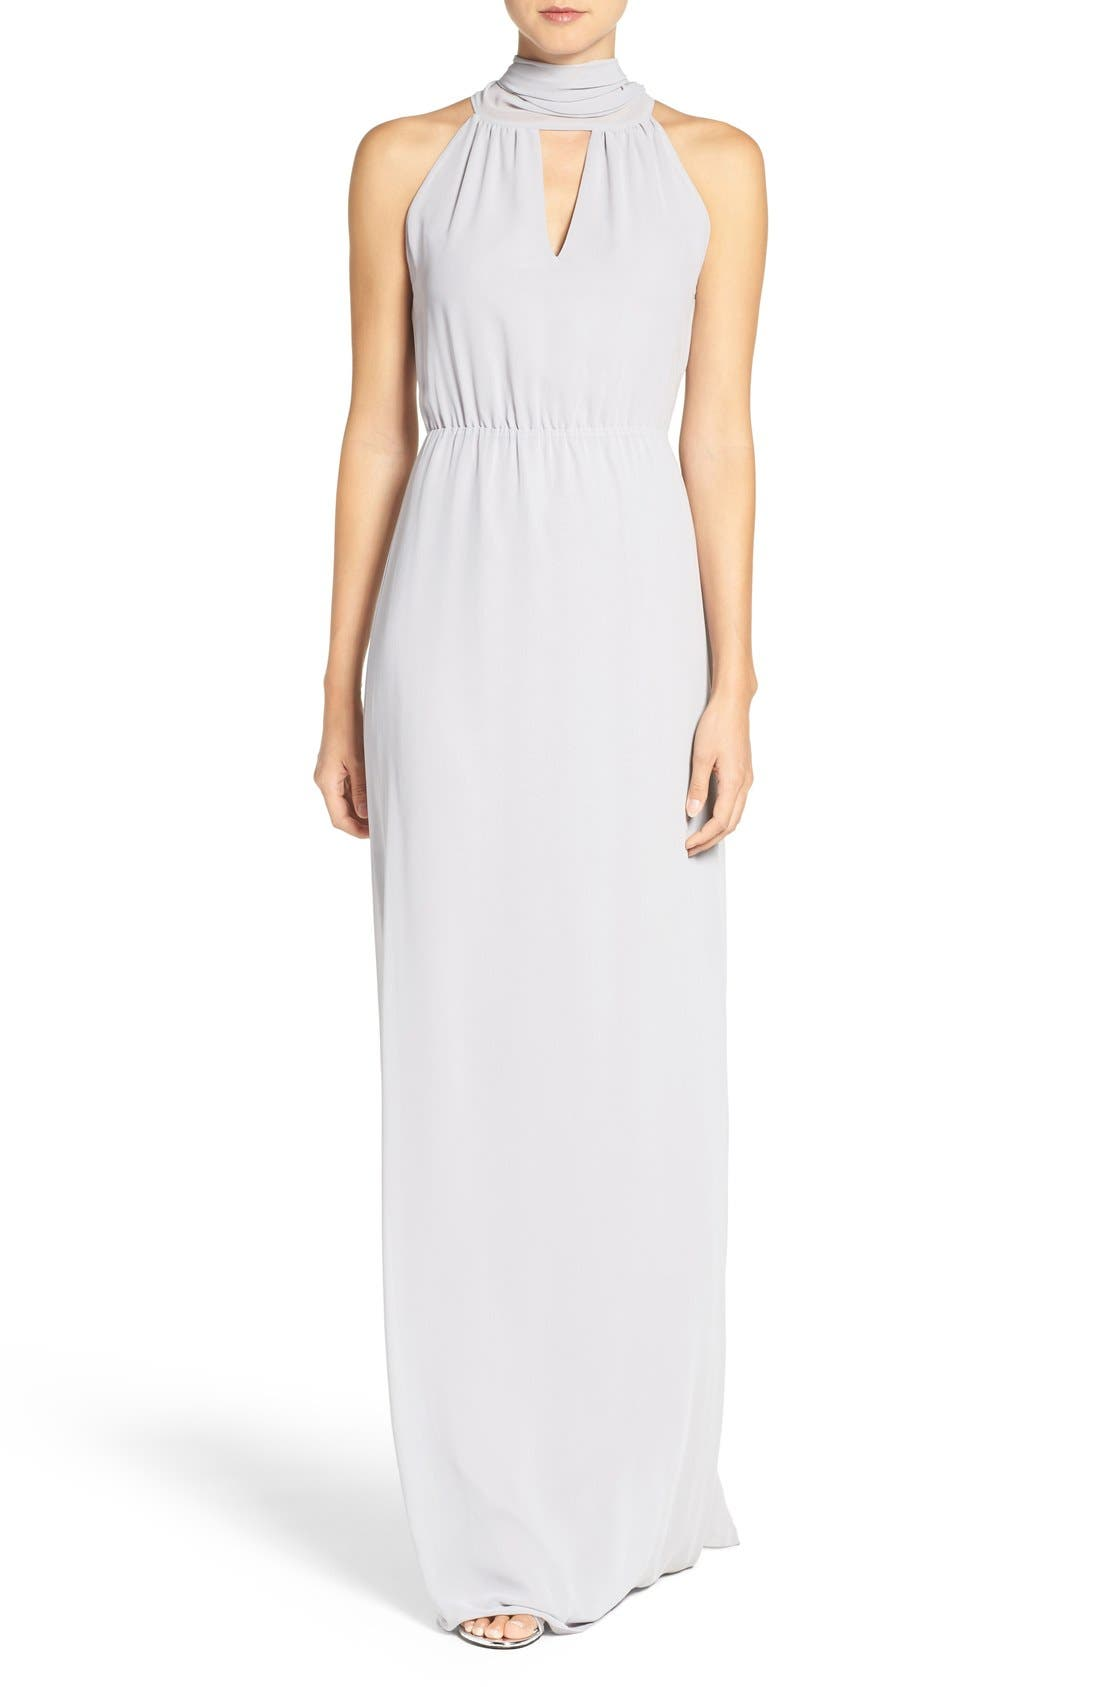 CEREMONY BY JOANNA AUGUST 'Riggs' Halter V-Neck Chiffon